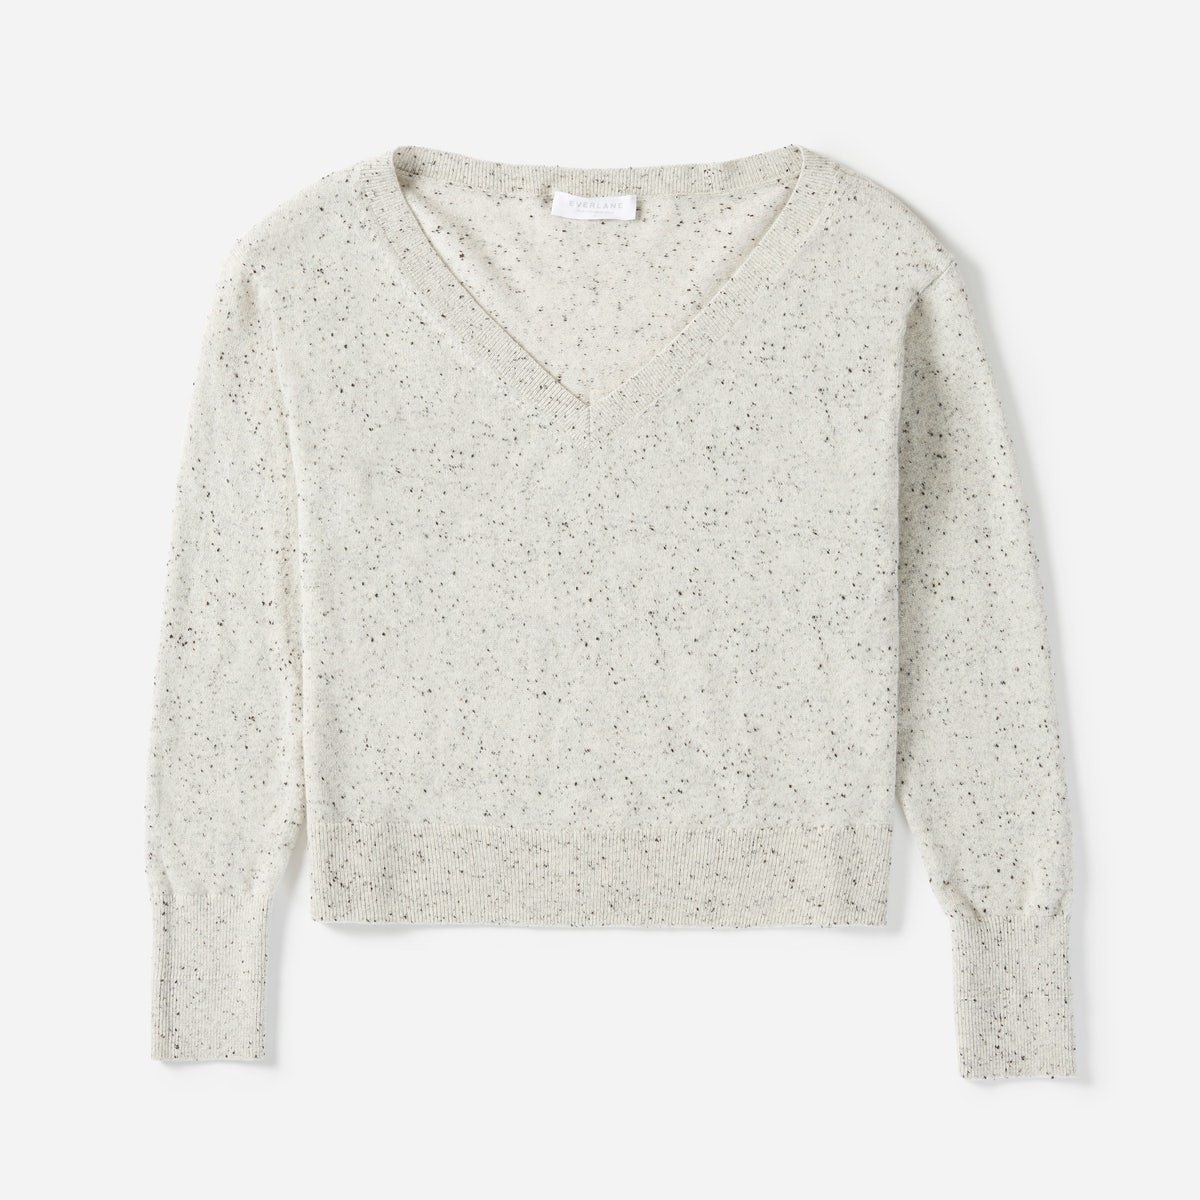 A Review of Everlane's Cashmere Crop V-Neck Sweater